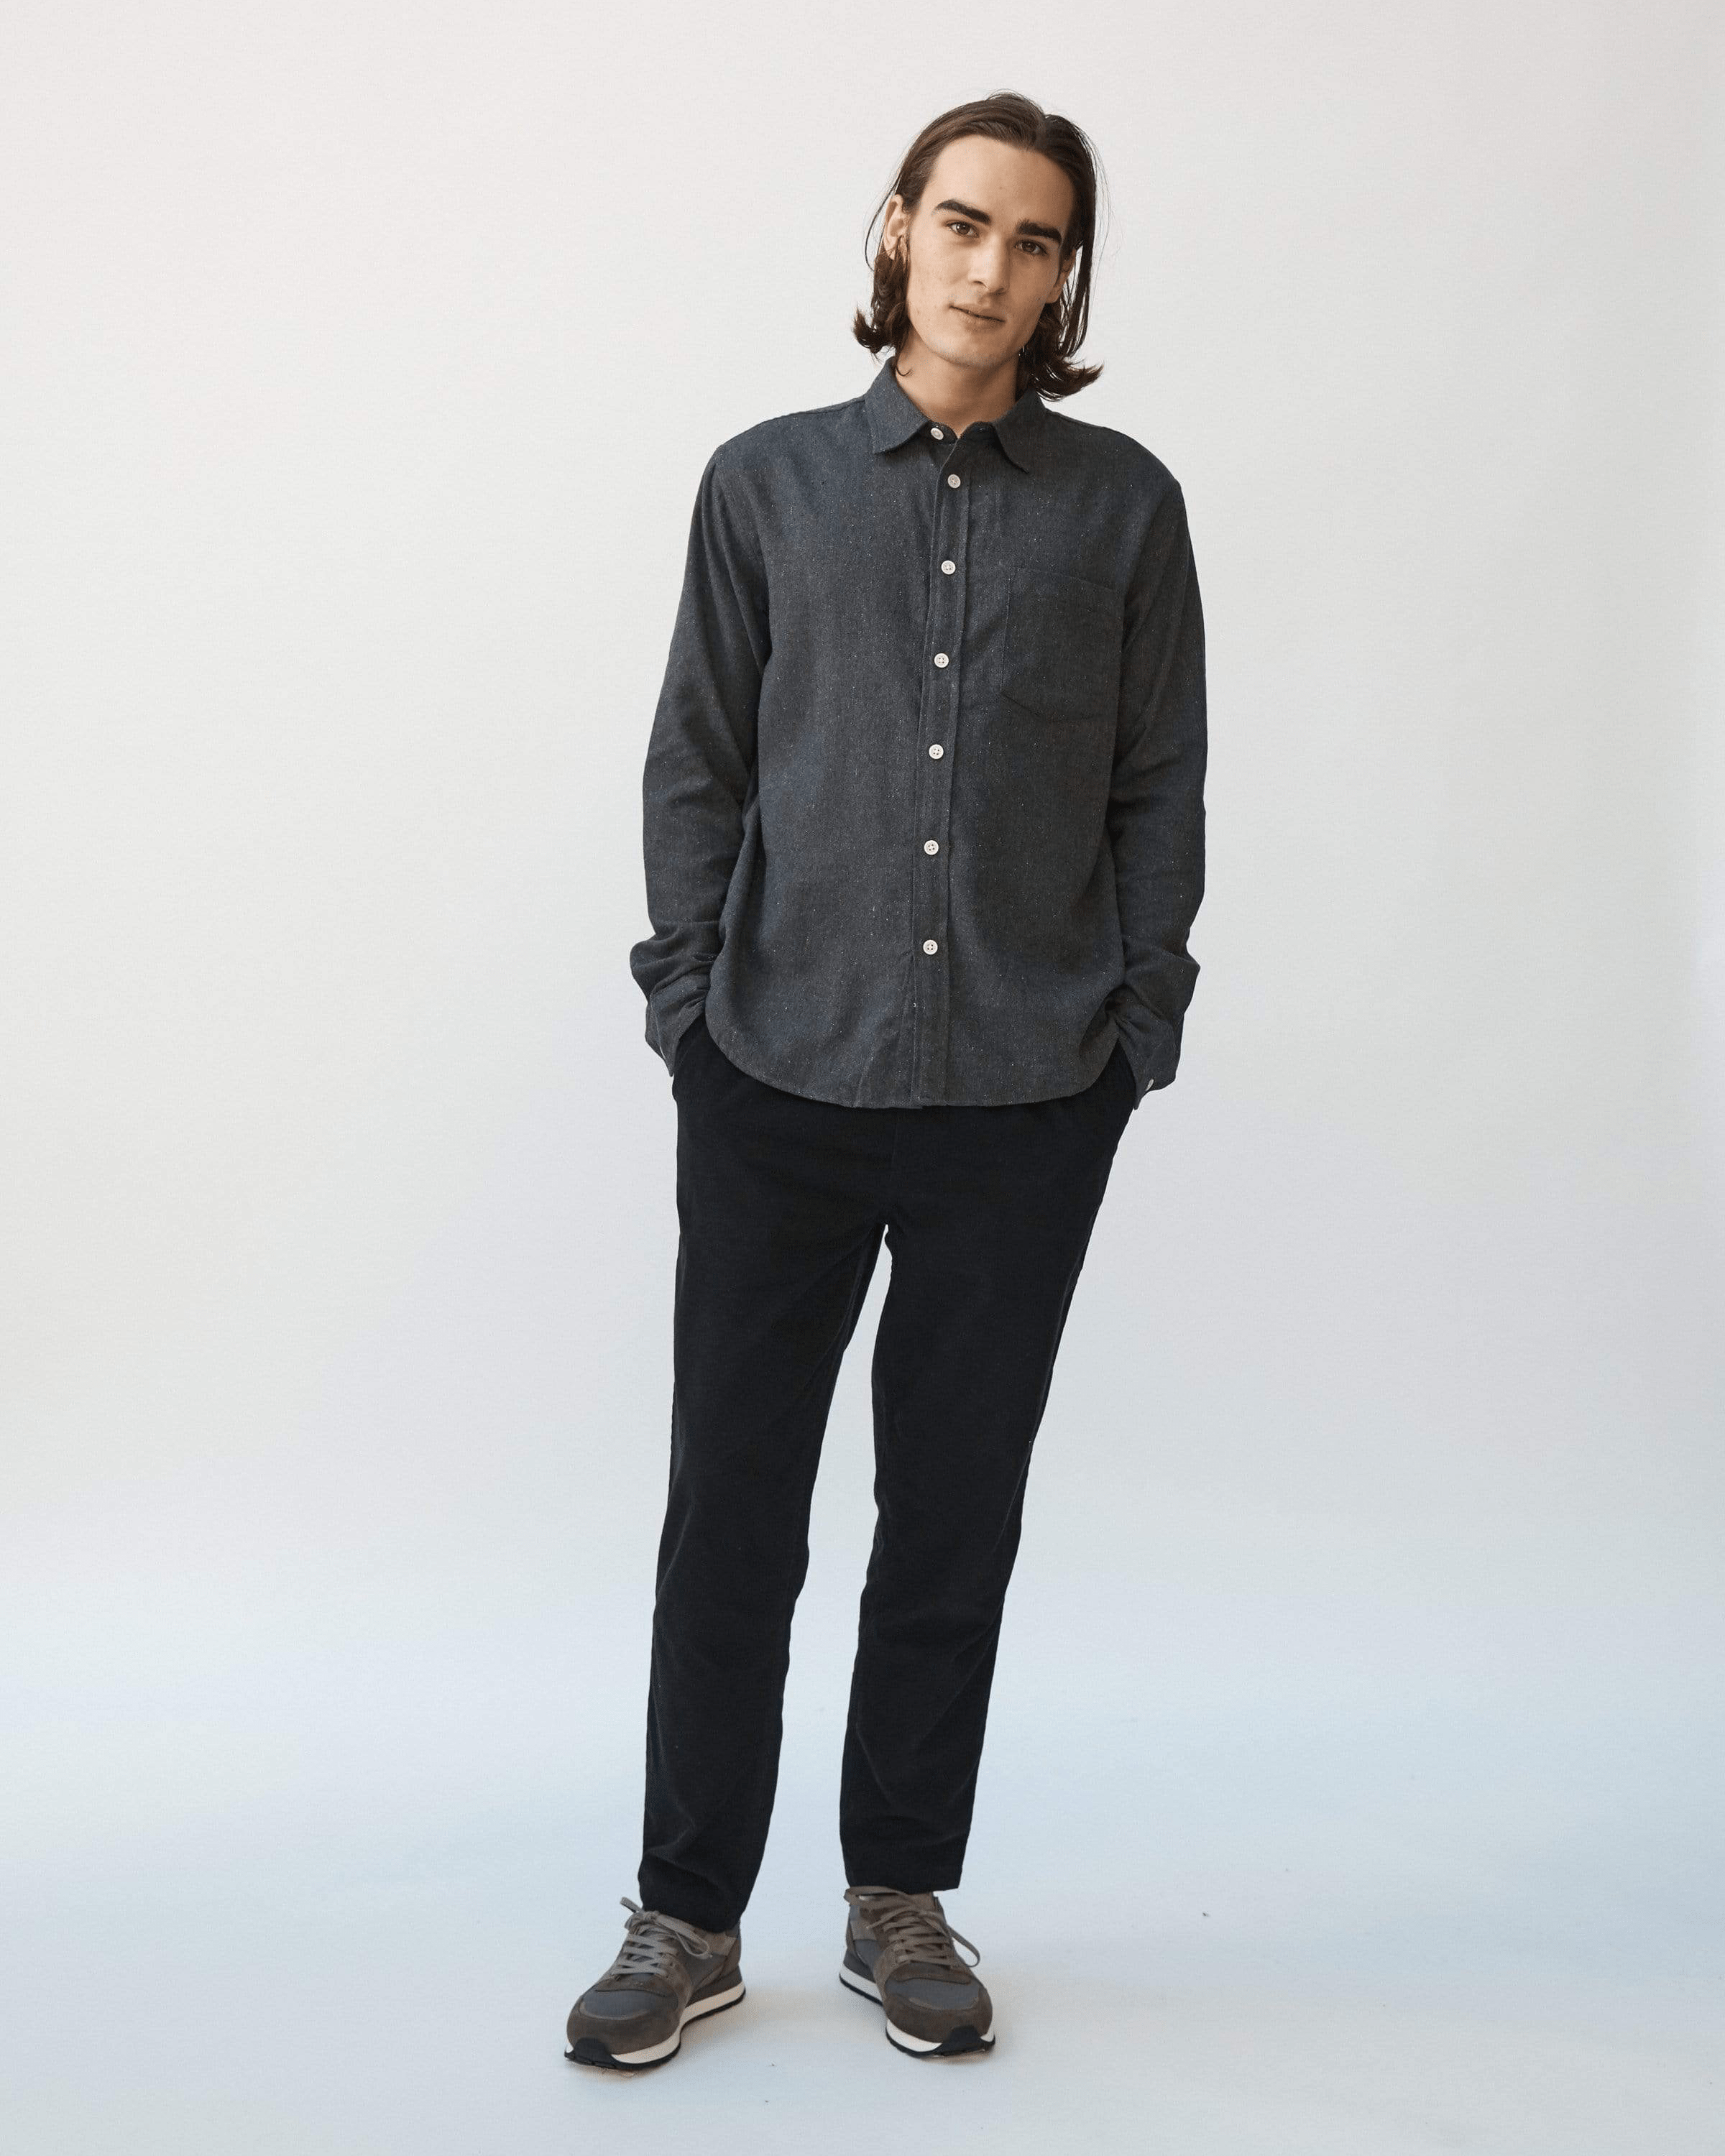 Recycled Double Twill Flannel - Black